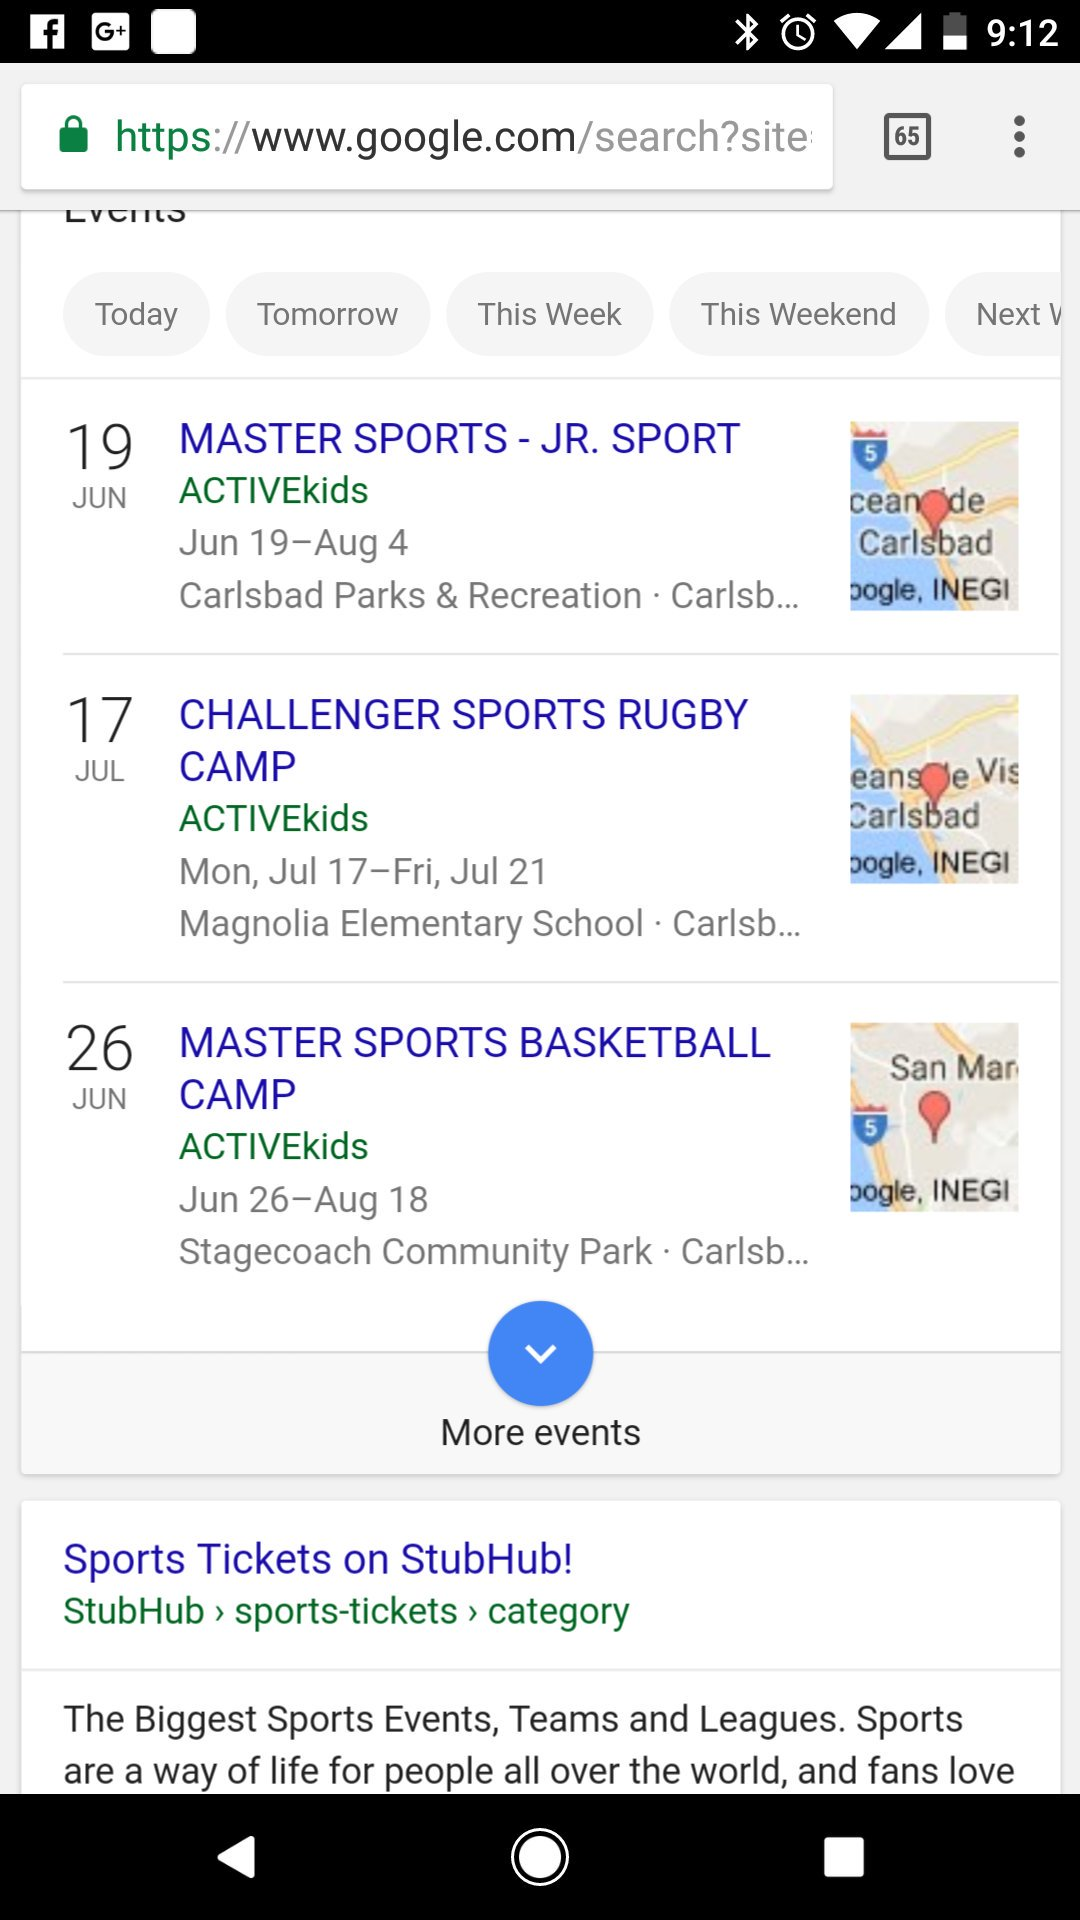 sports events near me